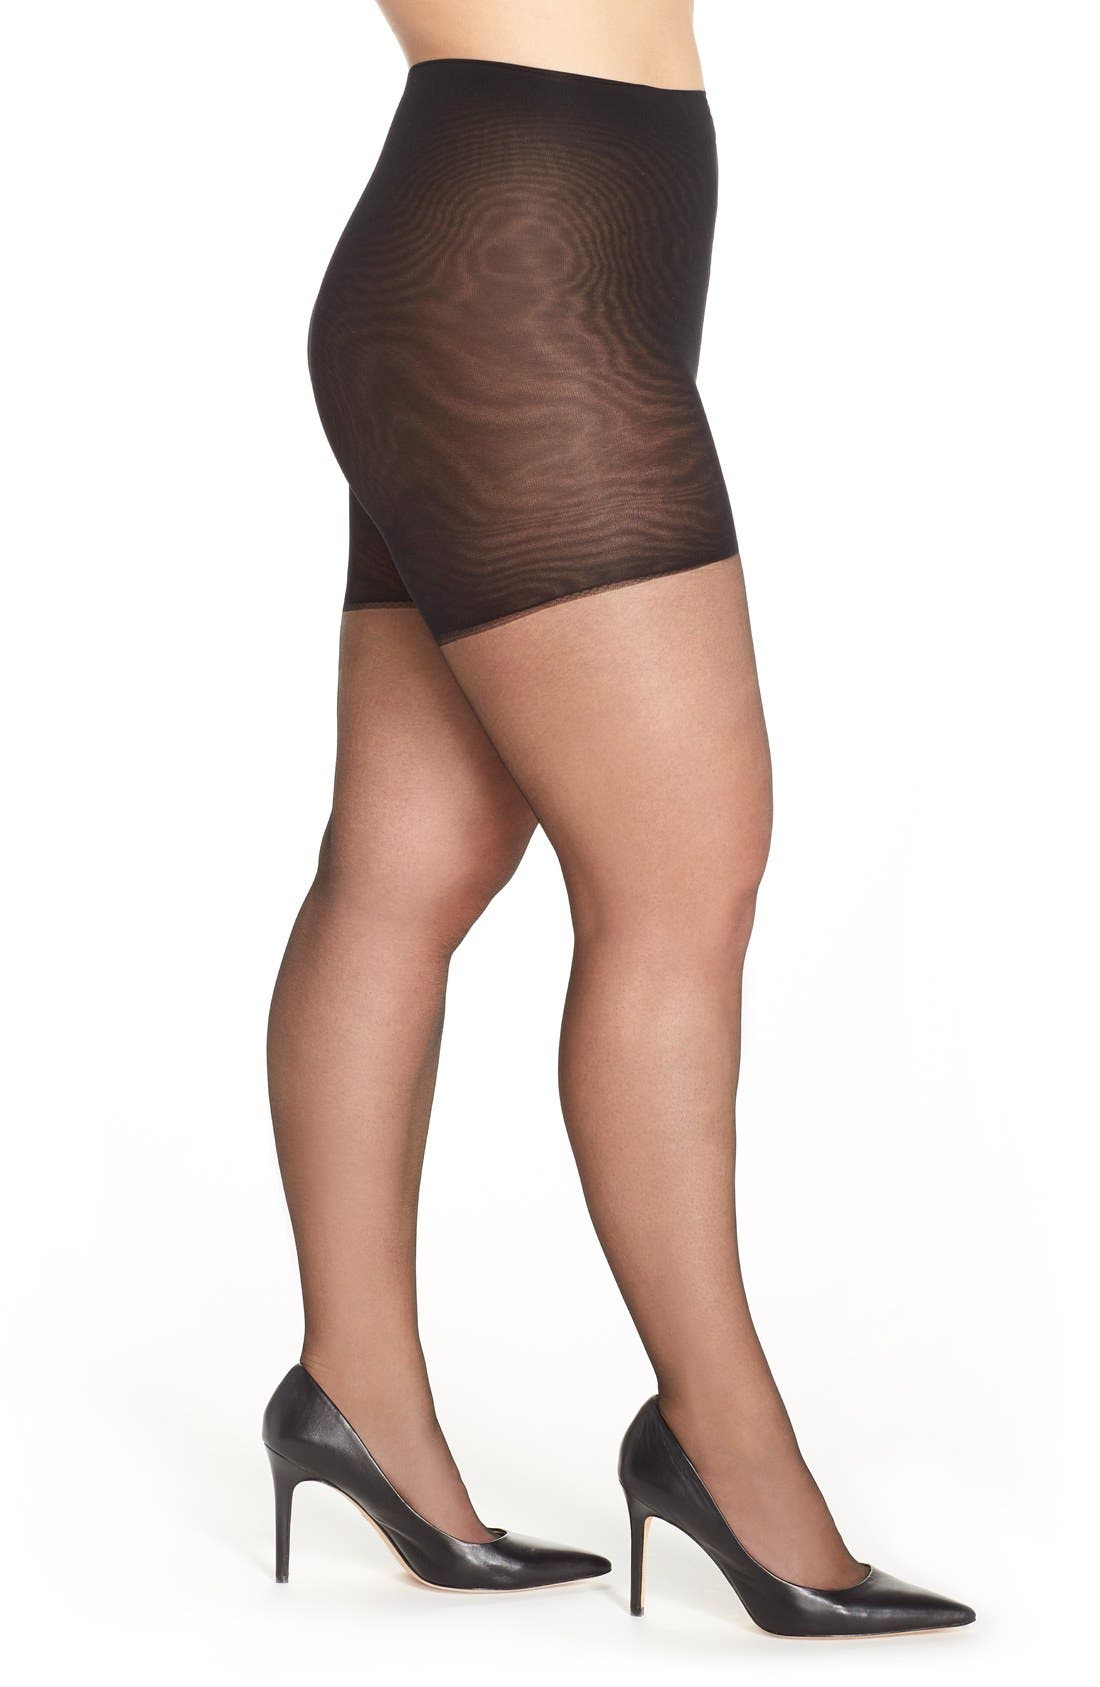 Berkshire Control Top Pantyhose (Plus Size)